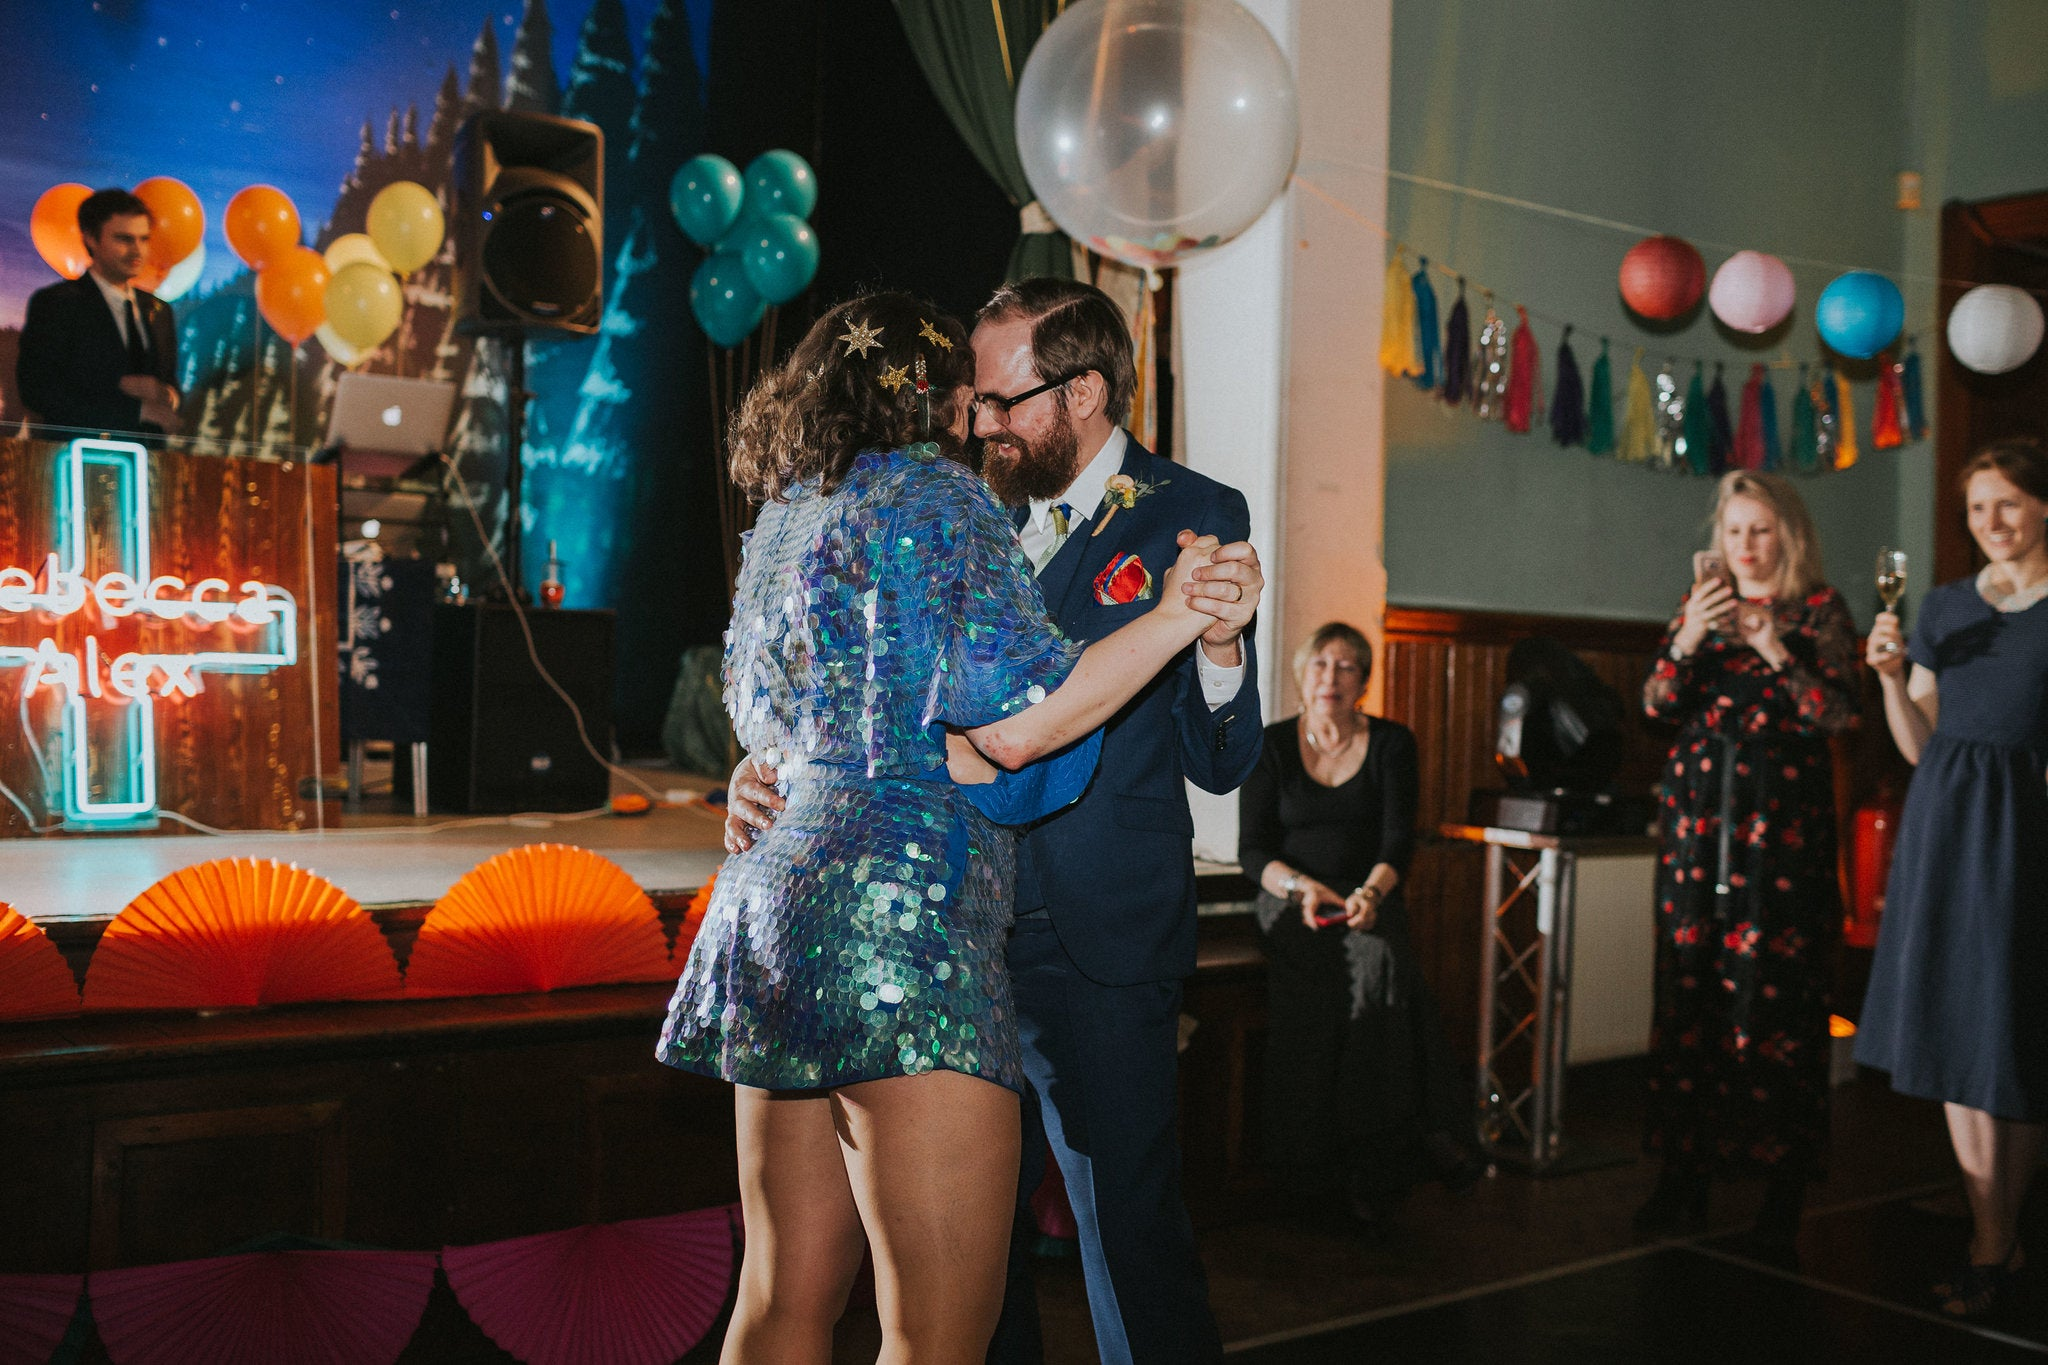 A bride wearing a blue sequin romper dances with her husband at the wedding.